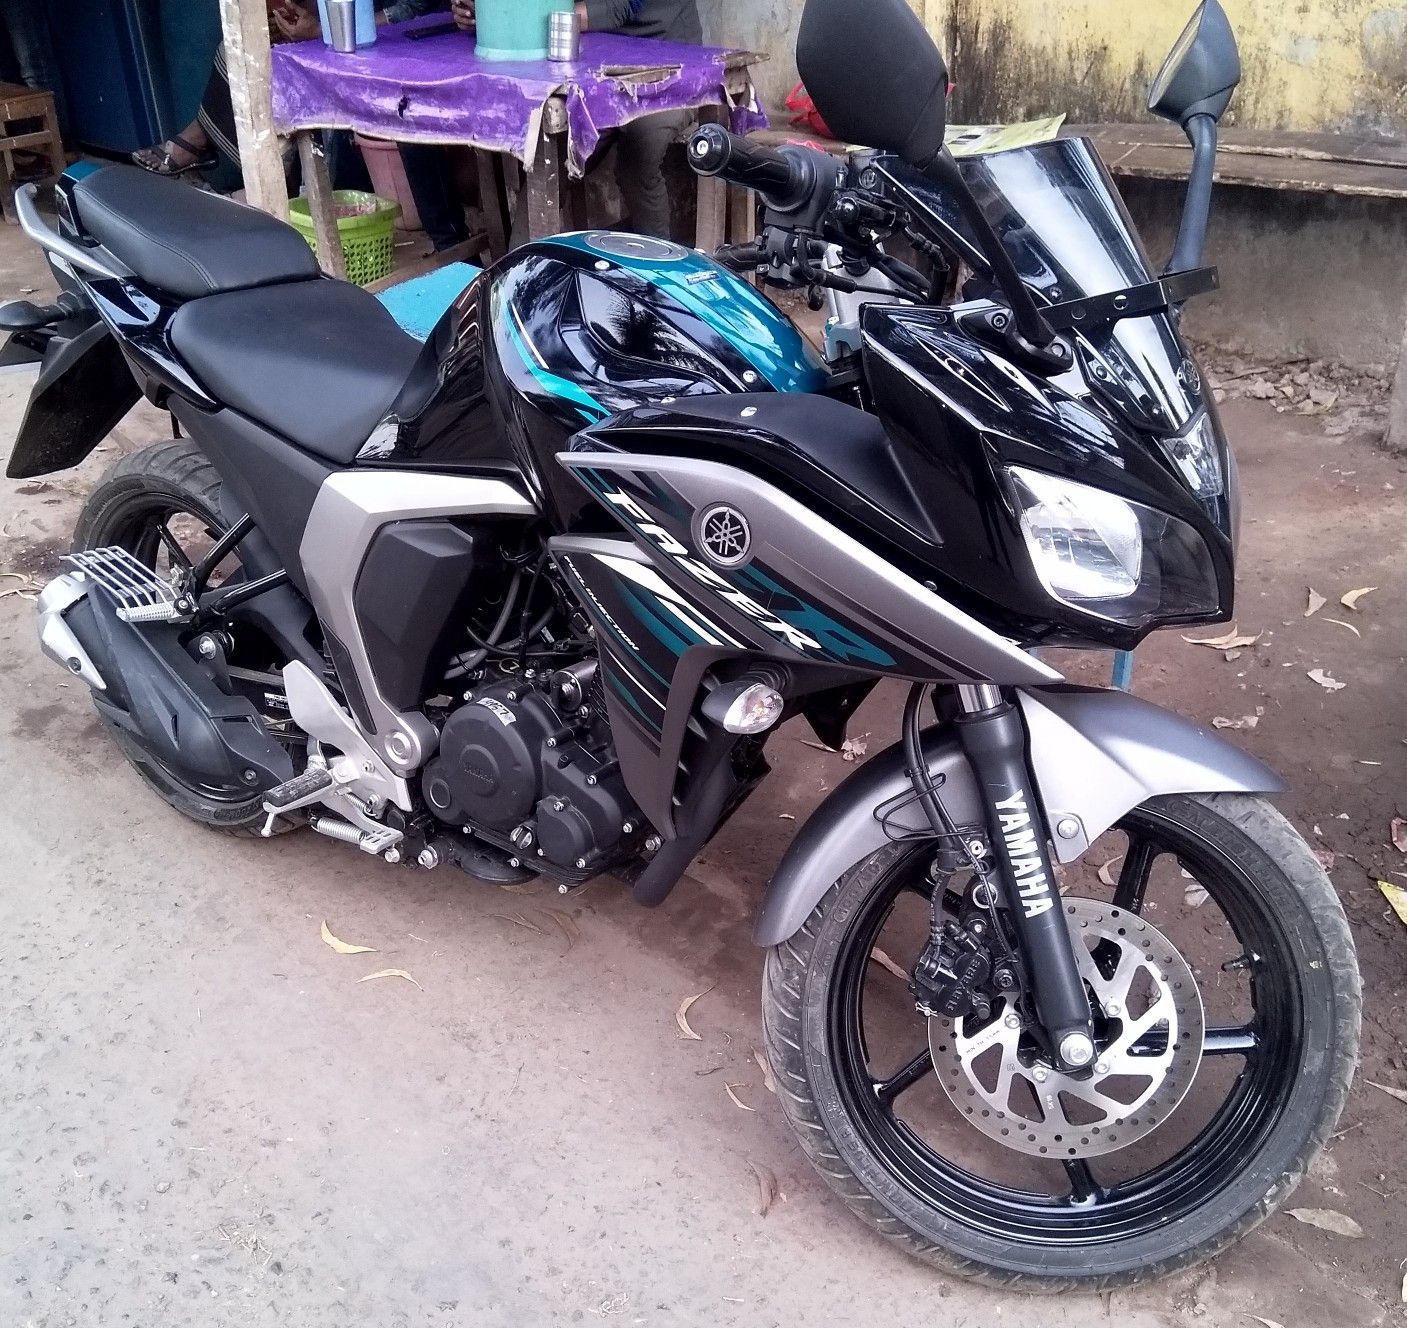 Yamaha Fazer Fi Is A Top Rated Premium Quality Sport Bike Which